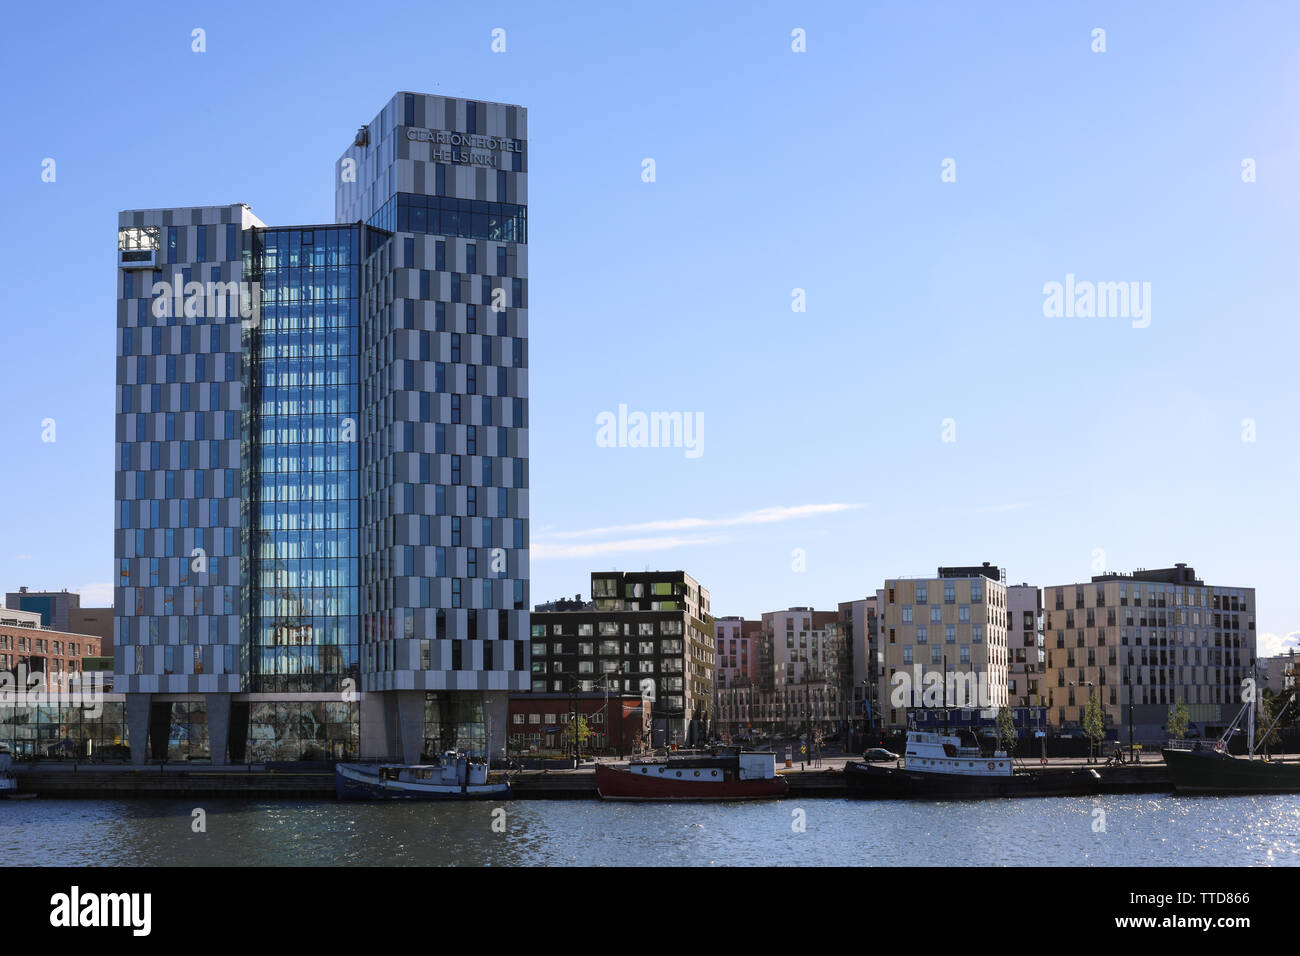 hotel-clarion-helsinki-and-surrounding-b